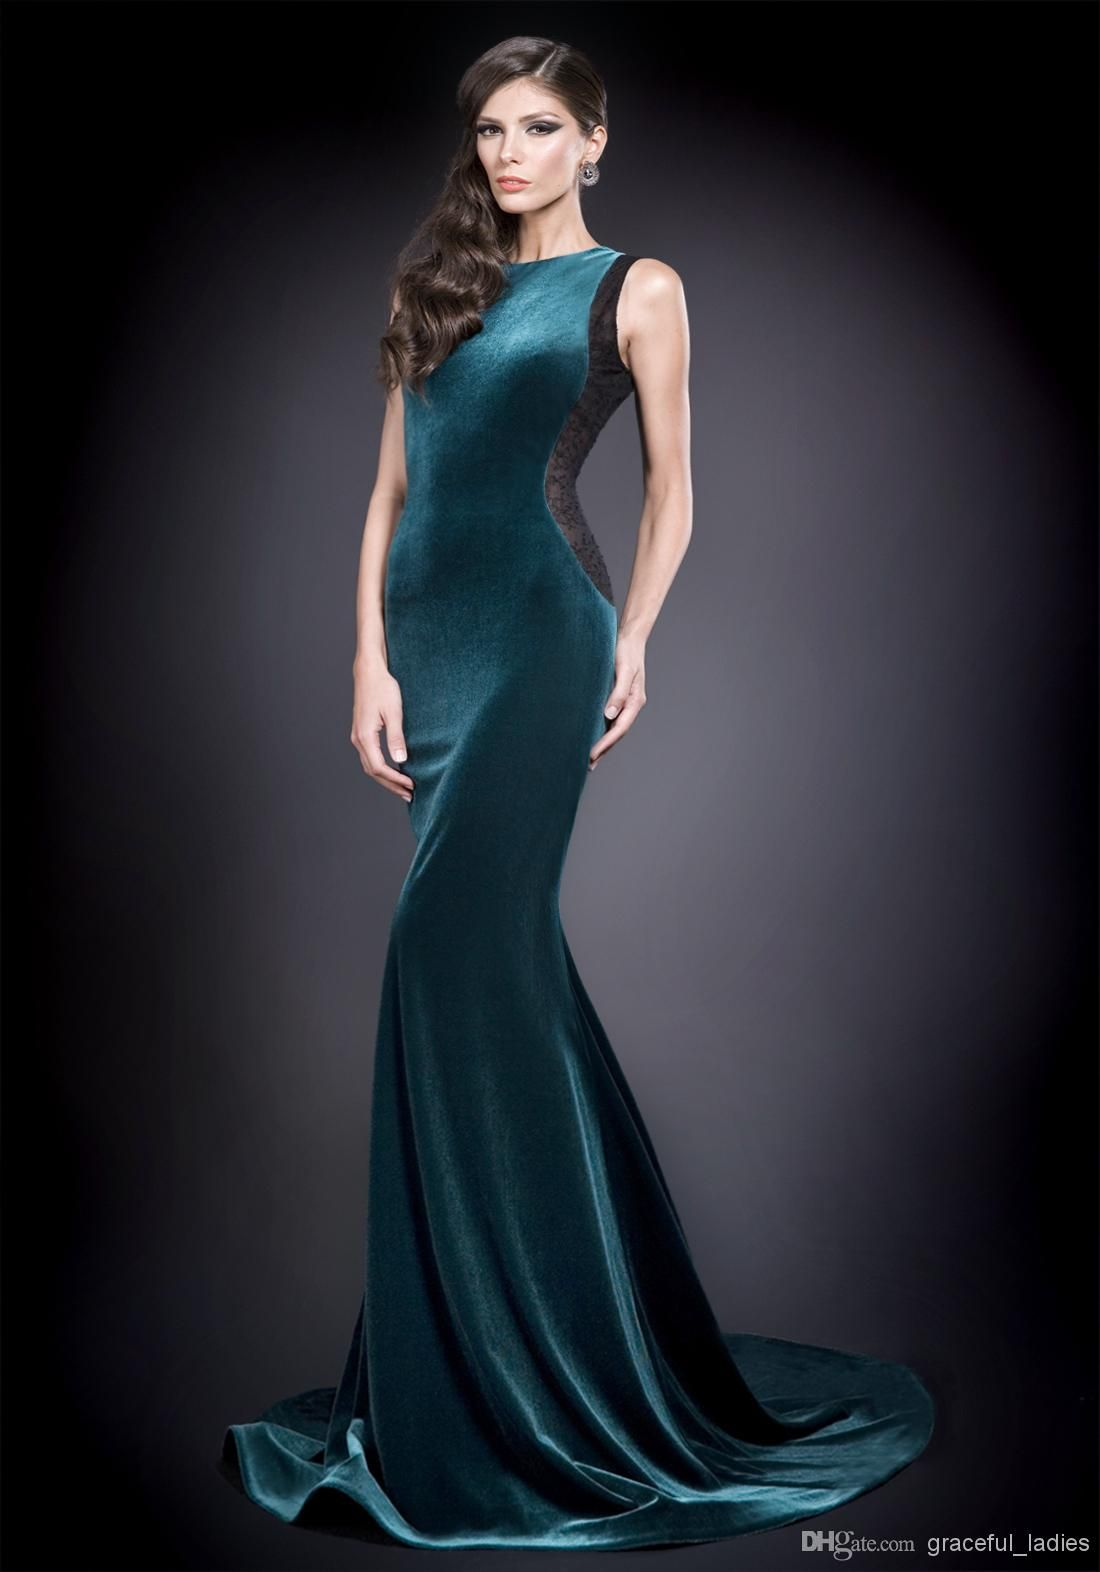 Velvet Gown Yahoo Image Search Results